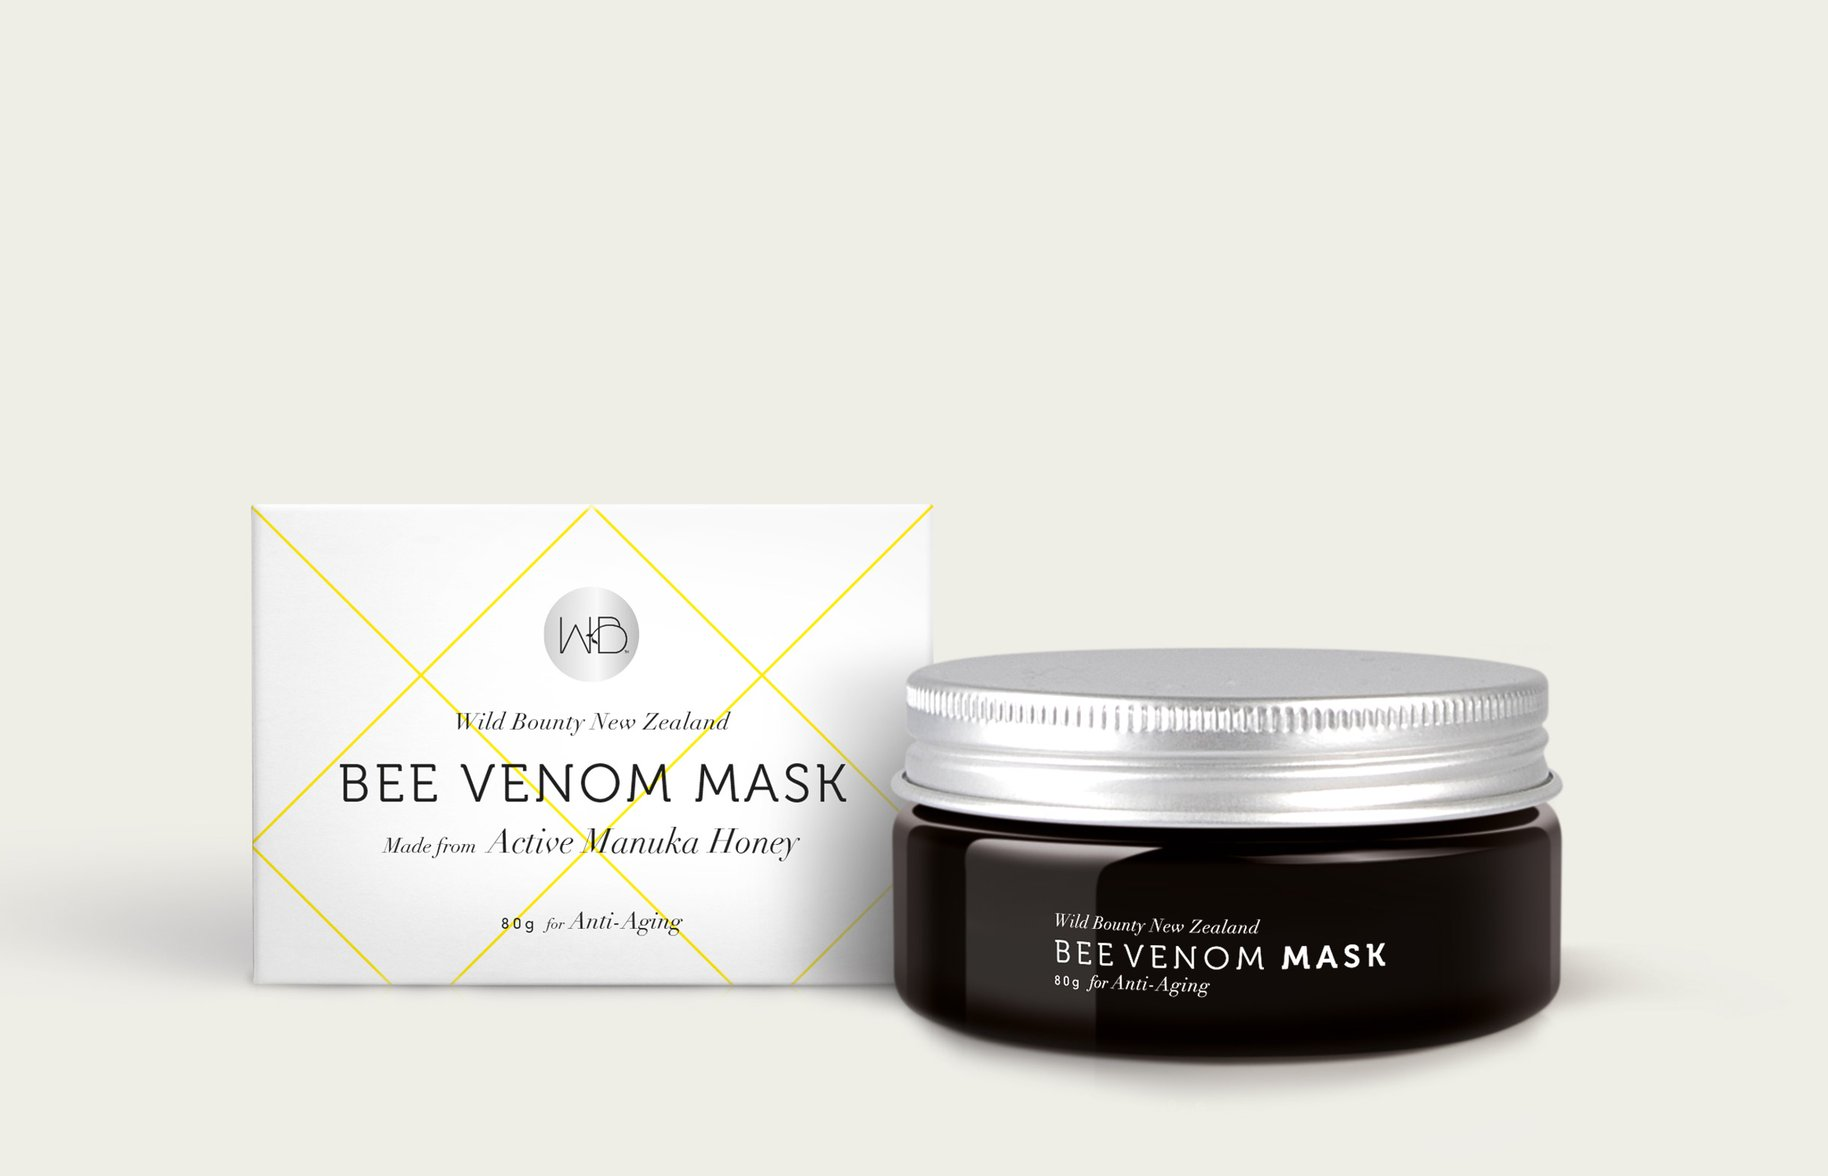 Wild Bounty bee venom mask packaging